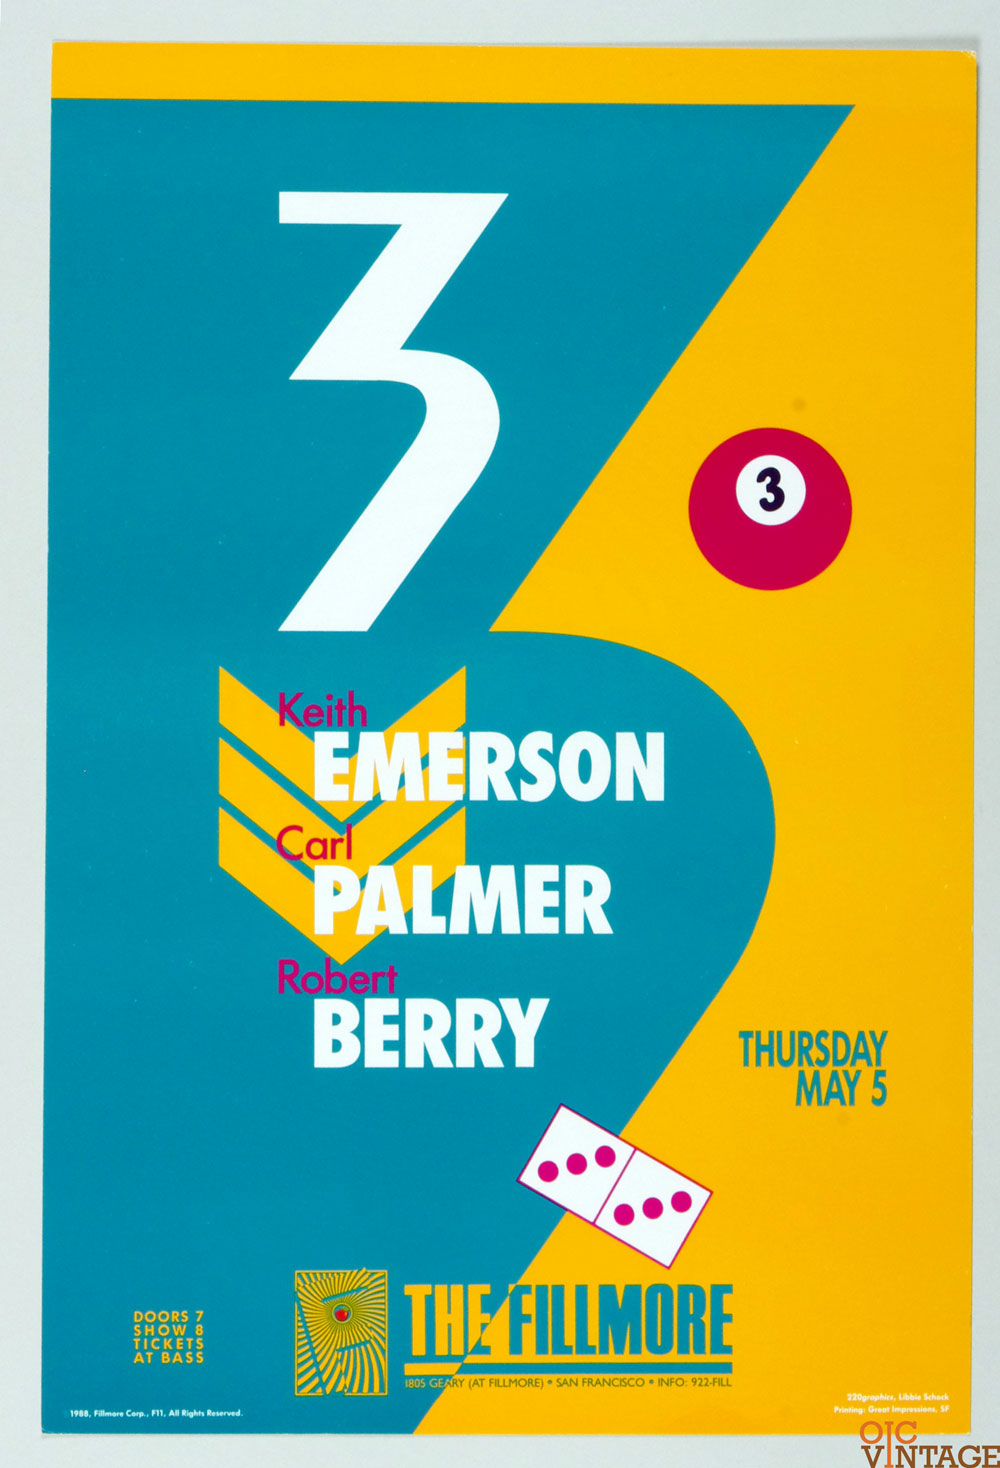 Emerson Palmer Berry Poster 1988 May 5 New Fillmore